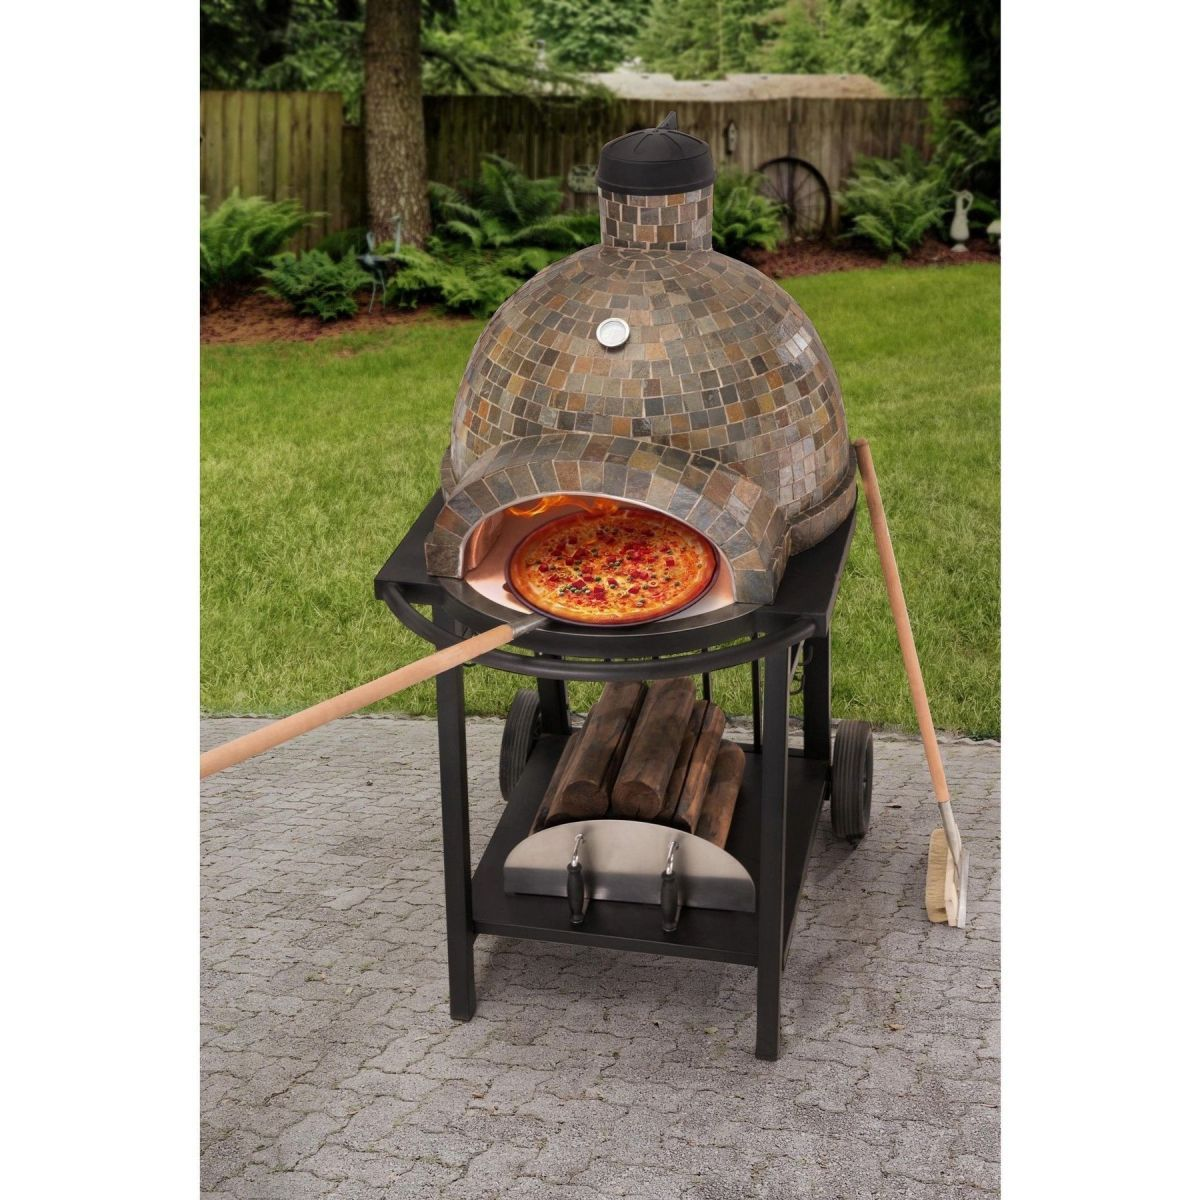 Outdoor Kitchen Ideas Your Guest Happy Visiting 15 Inspira Spaces Wood Fired Pizza Oven Pizza Oven Wood Fired Pizza